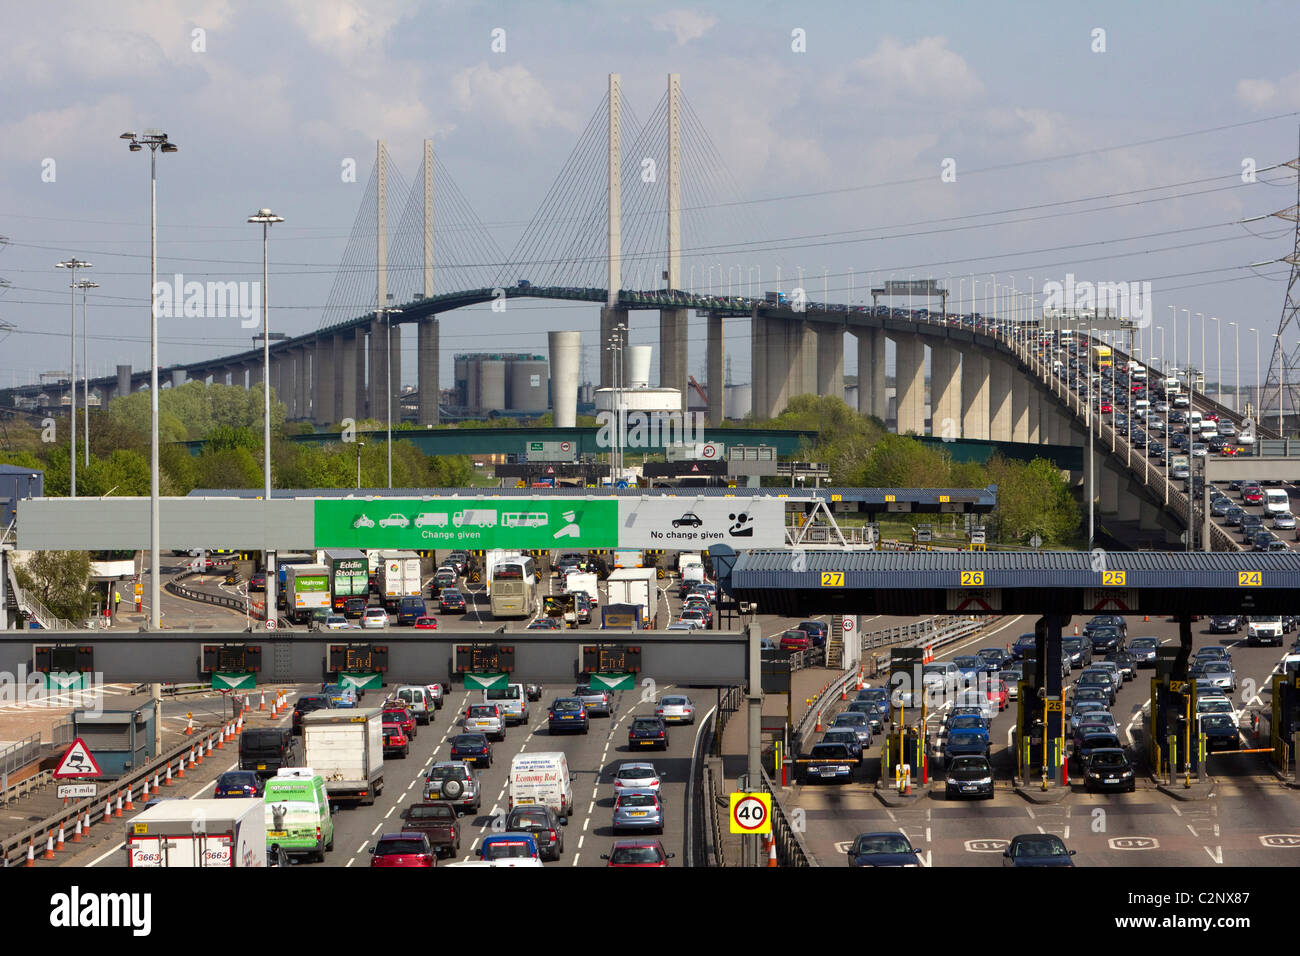 The Queen Elizabeth II Bridge dartford river thames M25 crossing with toll booths , london england uk gb - Stock Image